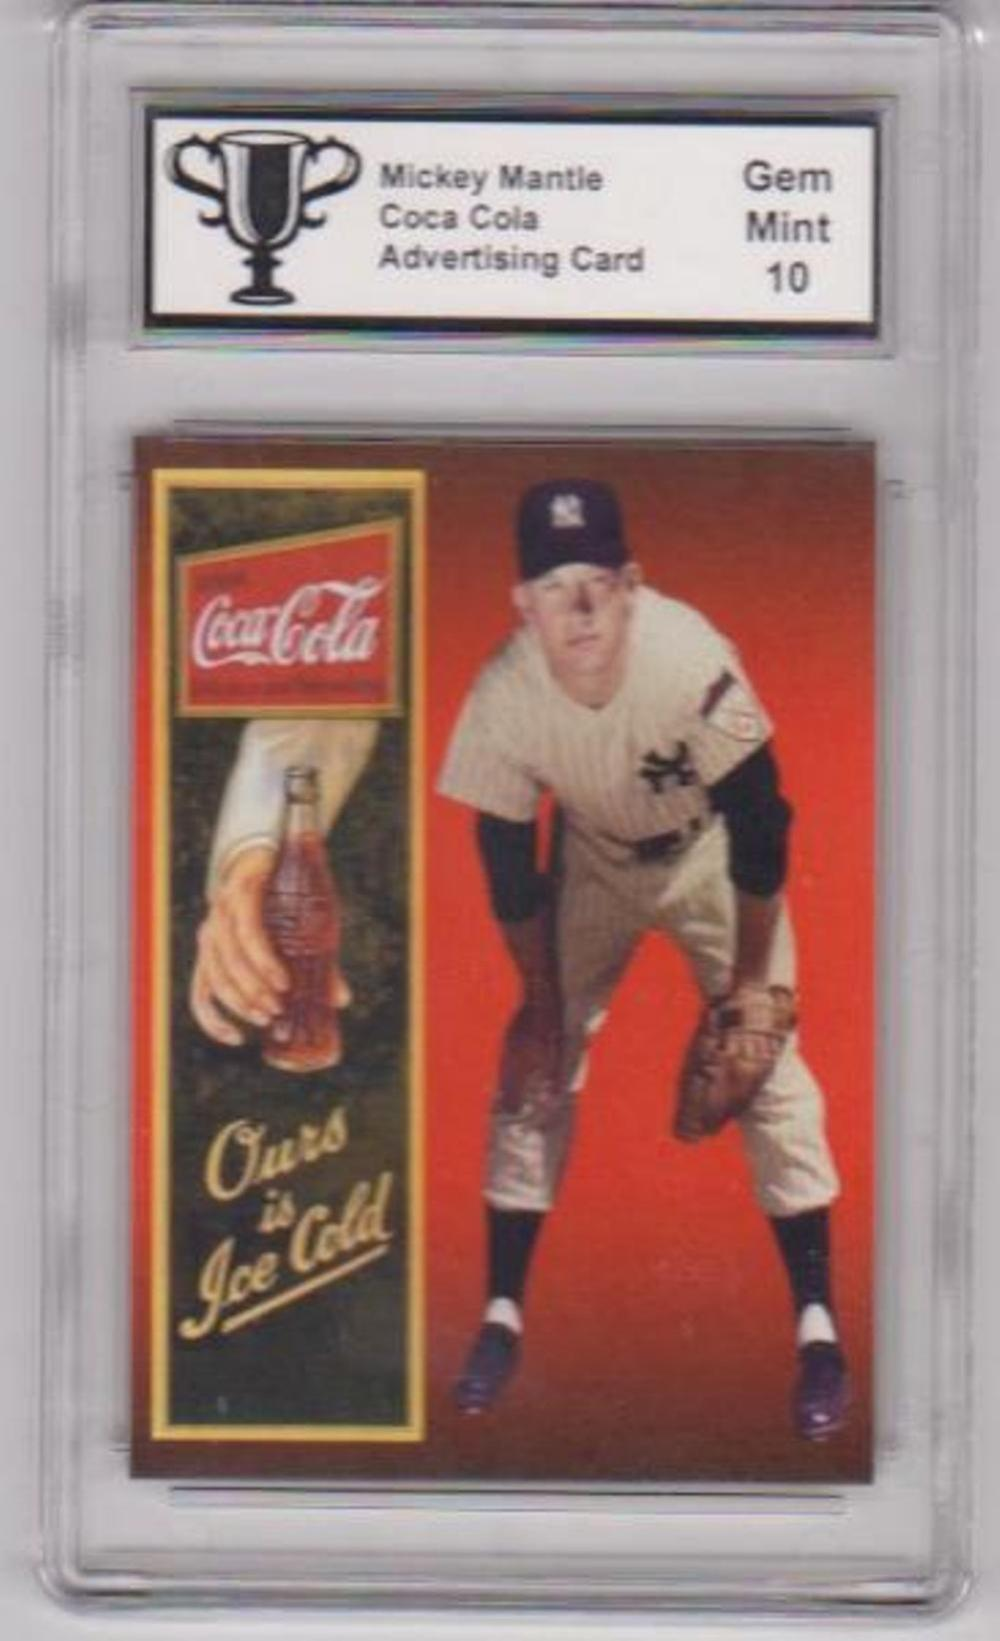 Graded Gem Mint 10 Mickey Mantle Coca-Cola Advertising Promo Card